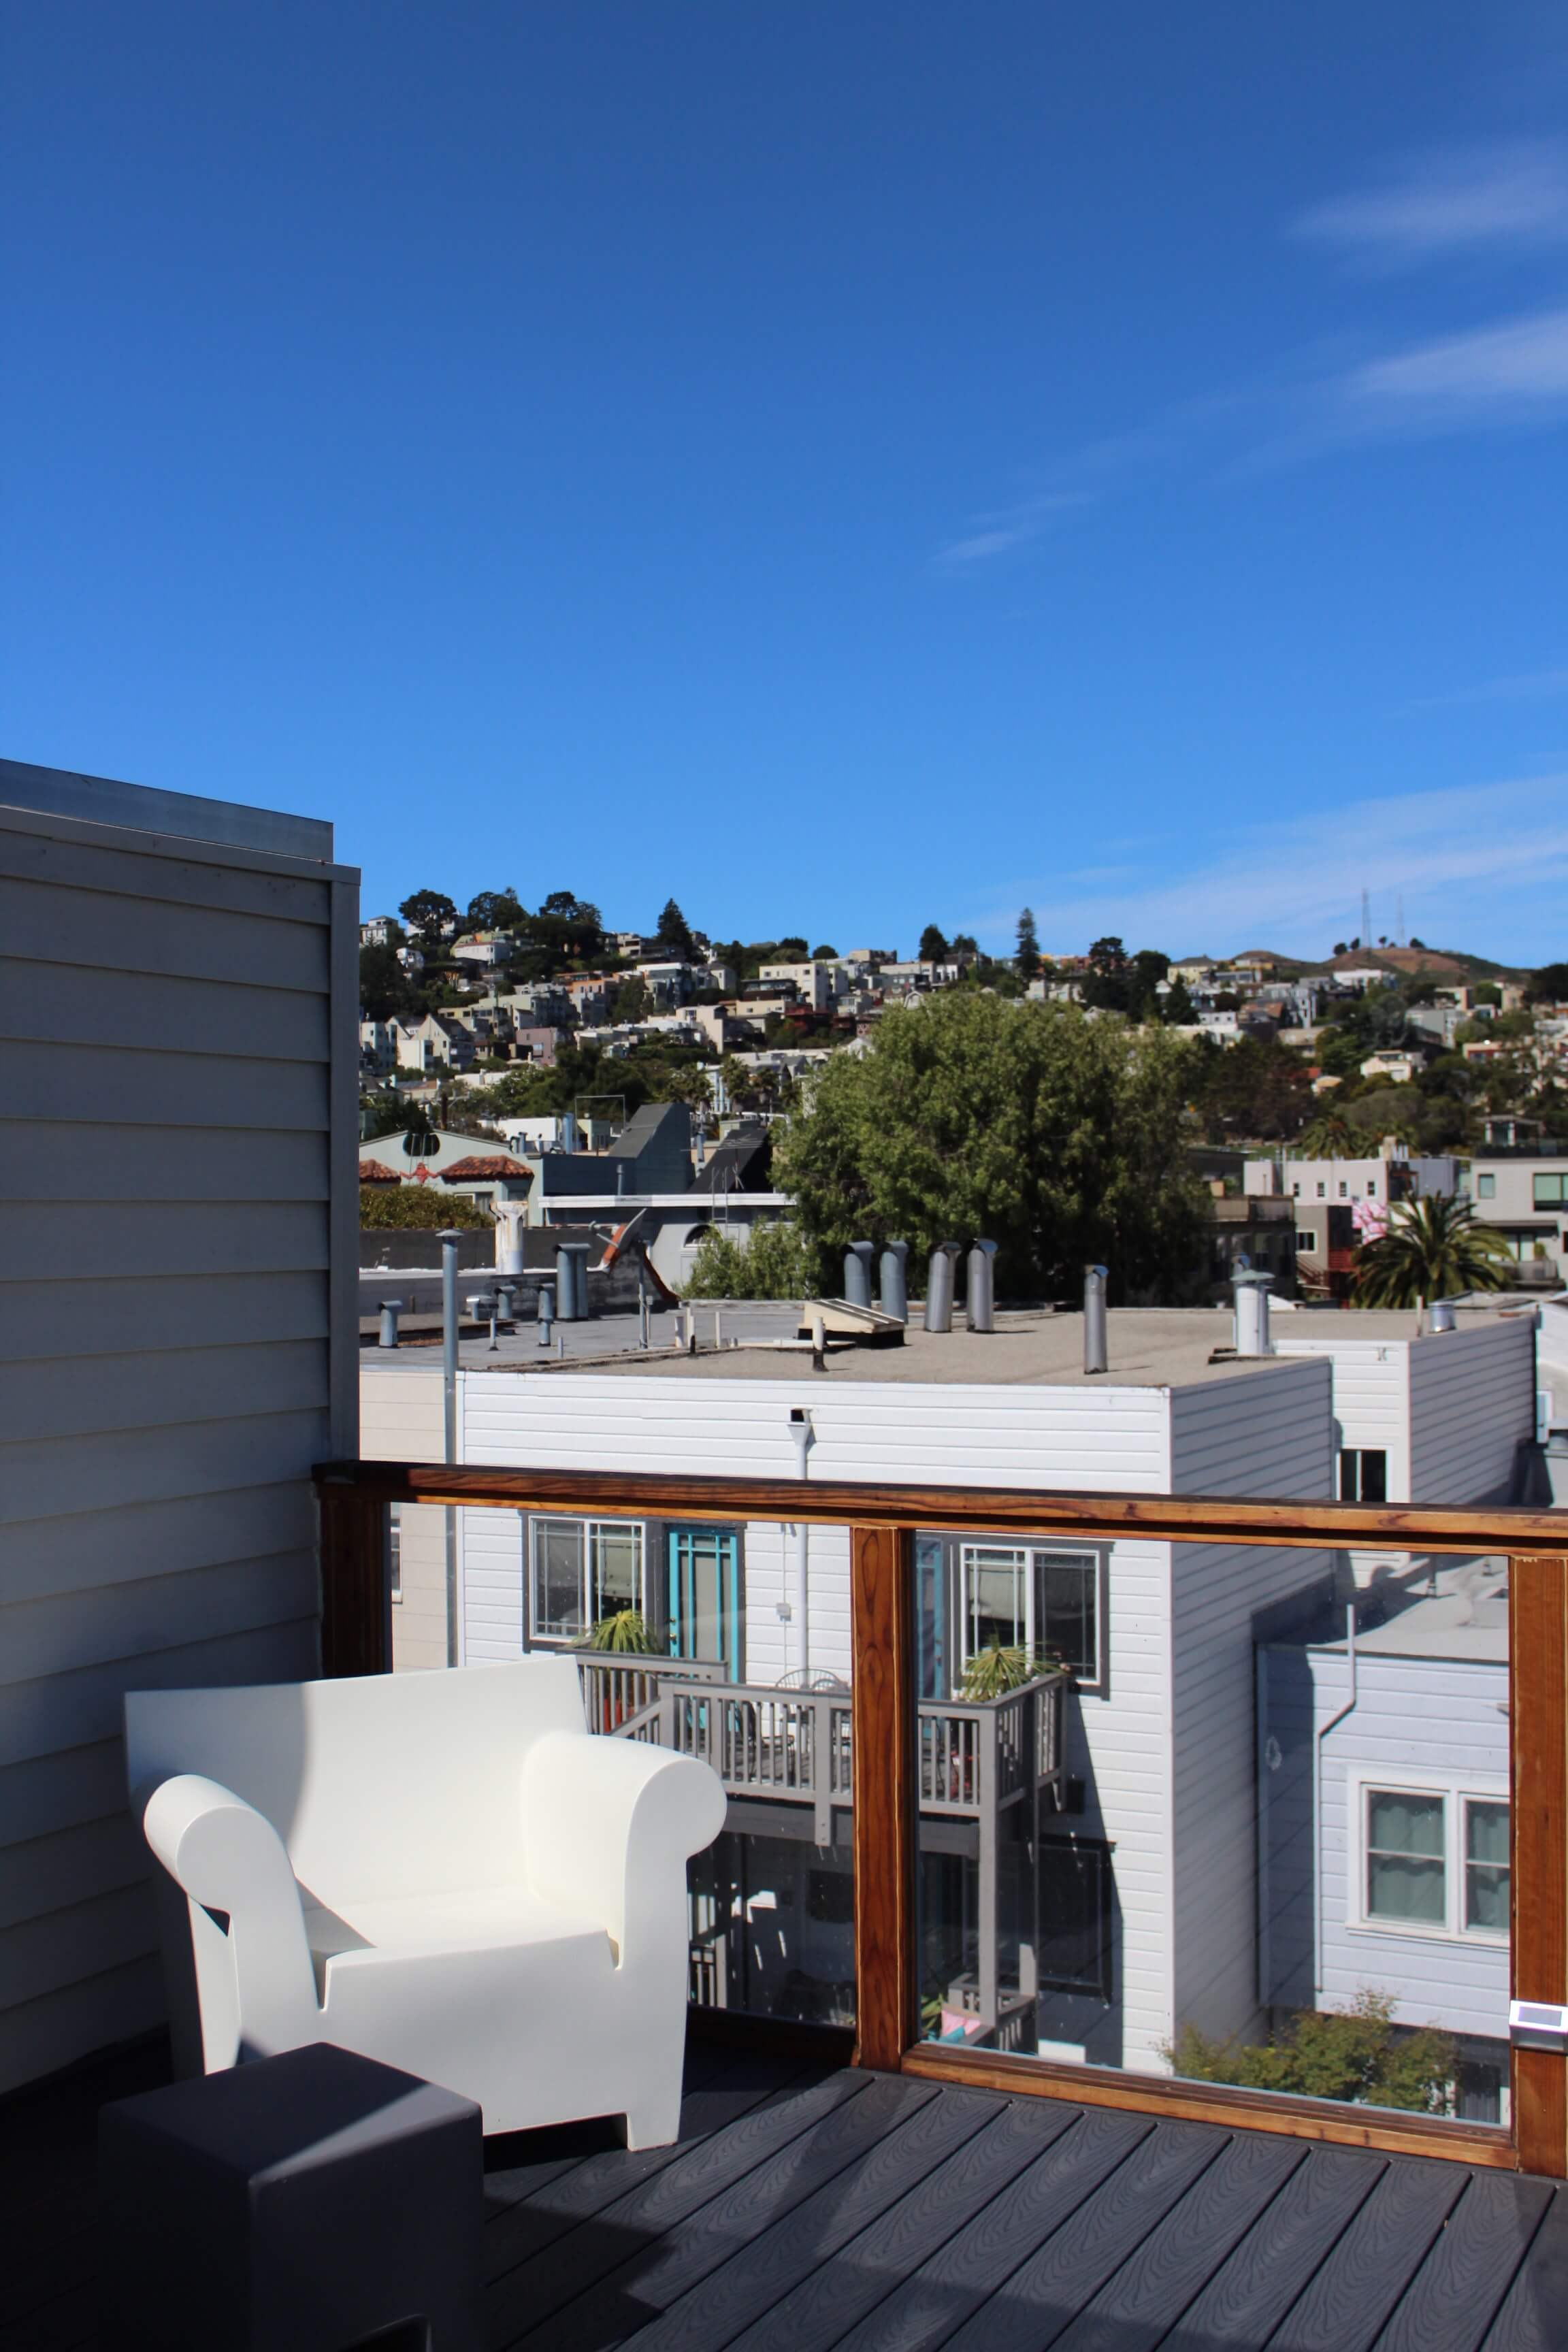 Roof deck, off of bdrm #2